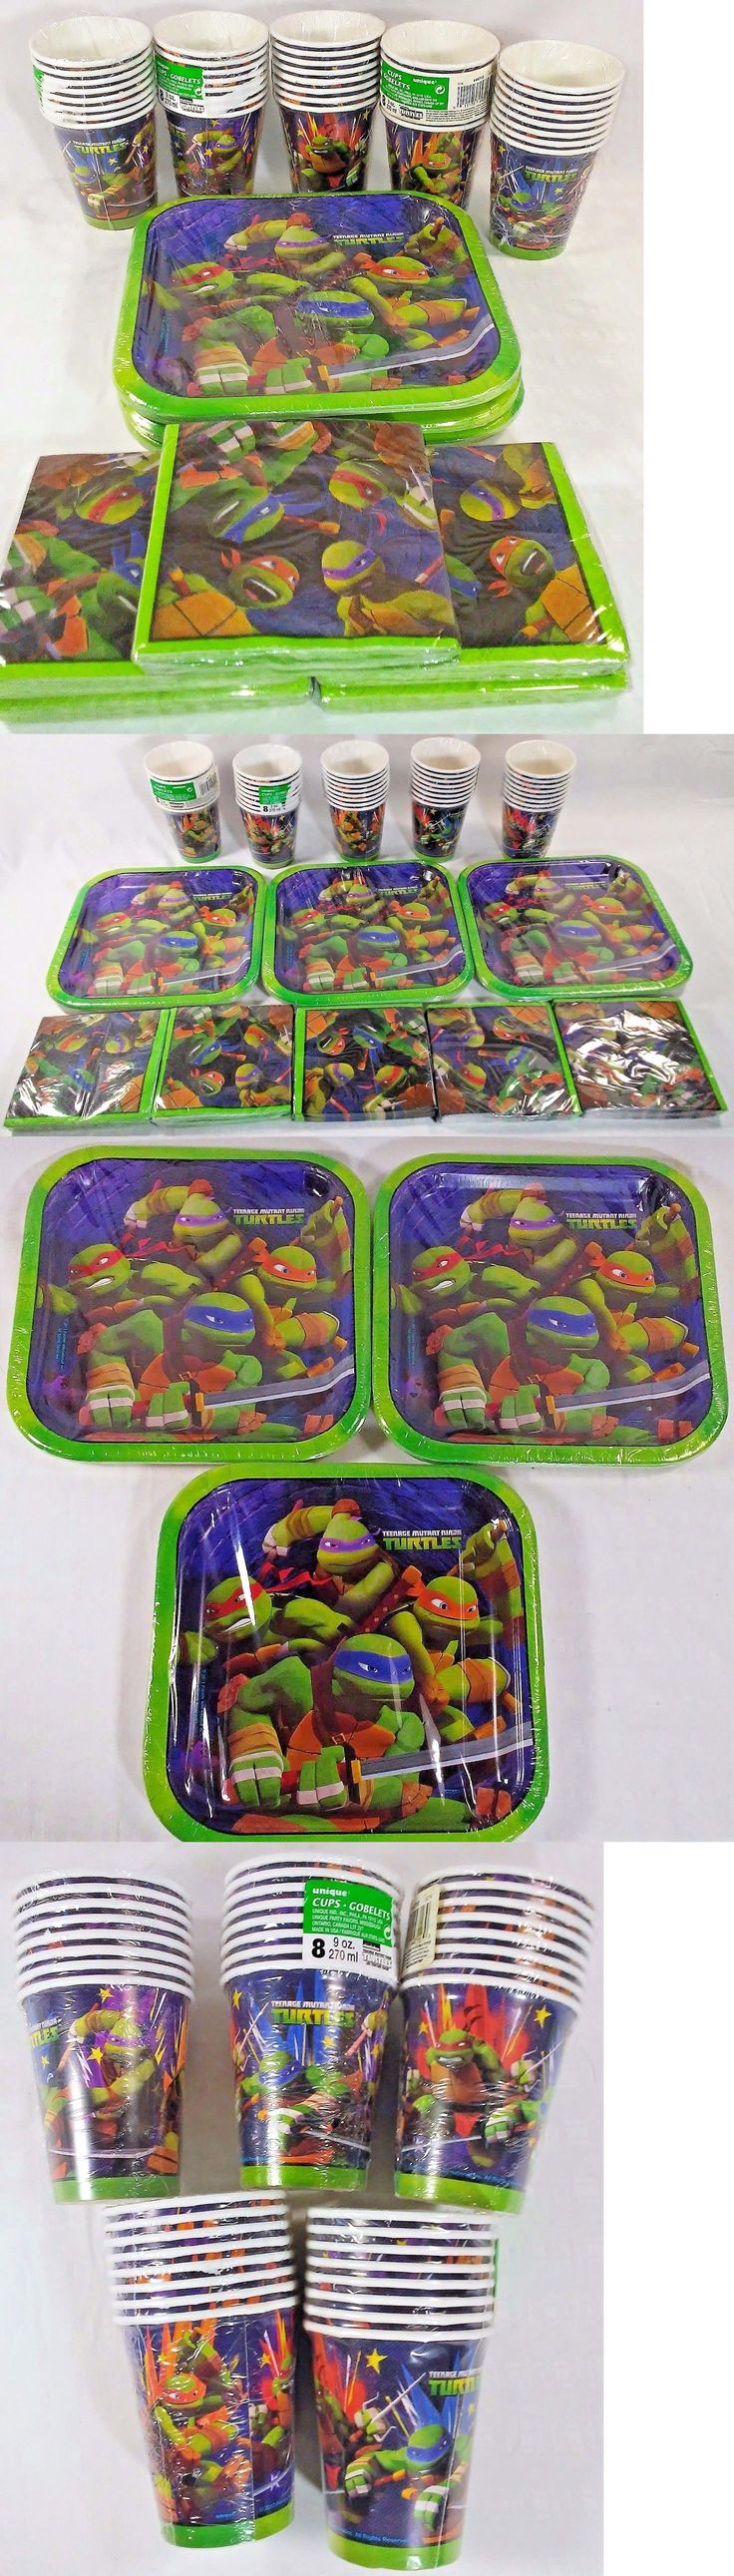 Party Tableware and Serveware 26388: Tmnt Teenage Mutant Ninja Turtles Party Supply Lot Tableware Cups Plates Napkins -> BUY IT NOW ONLY: $42.25 on eBay!